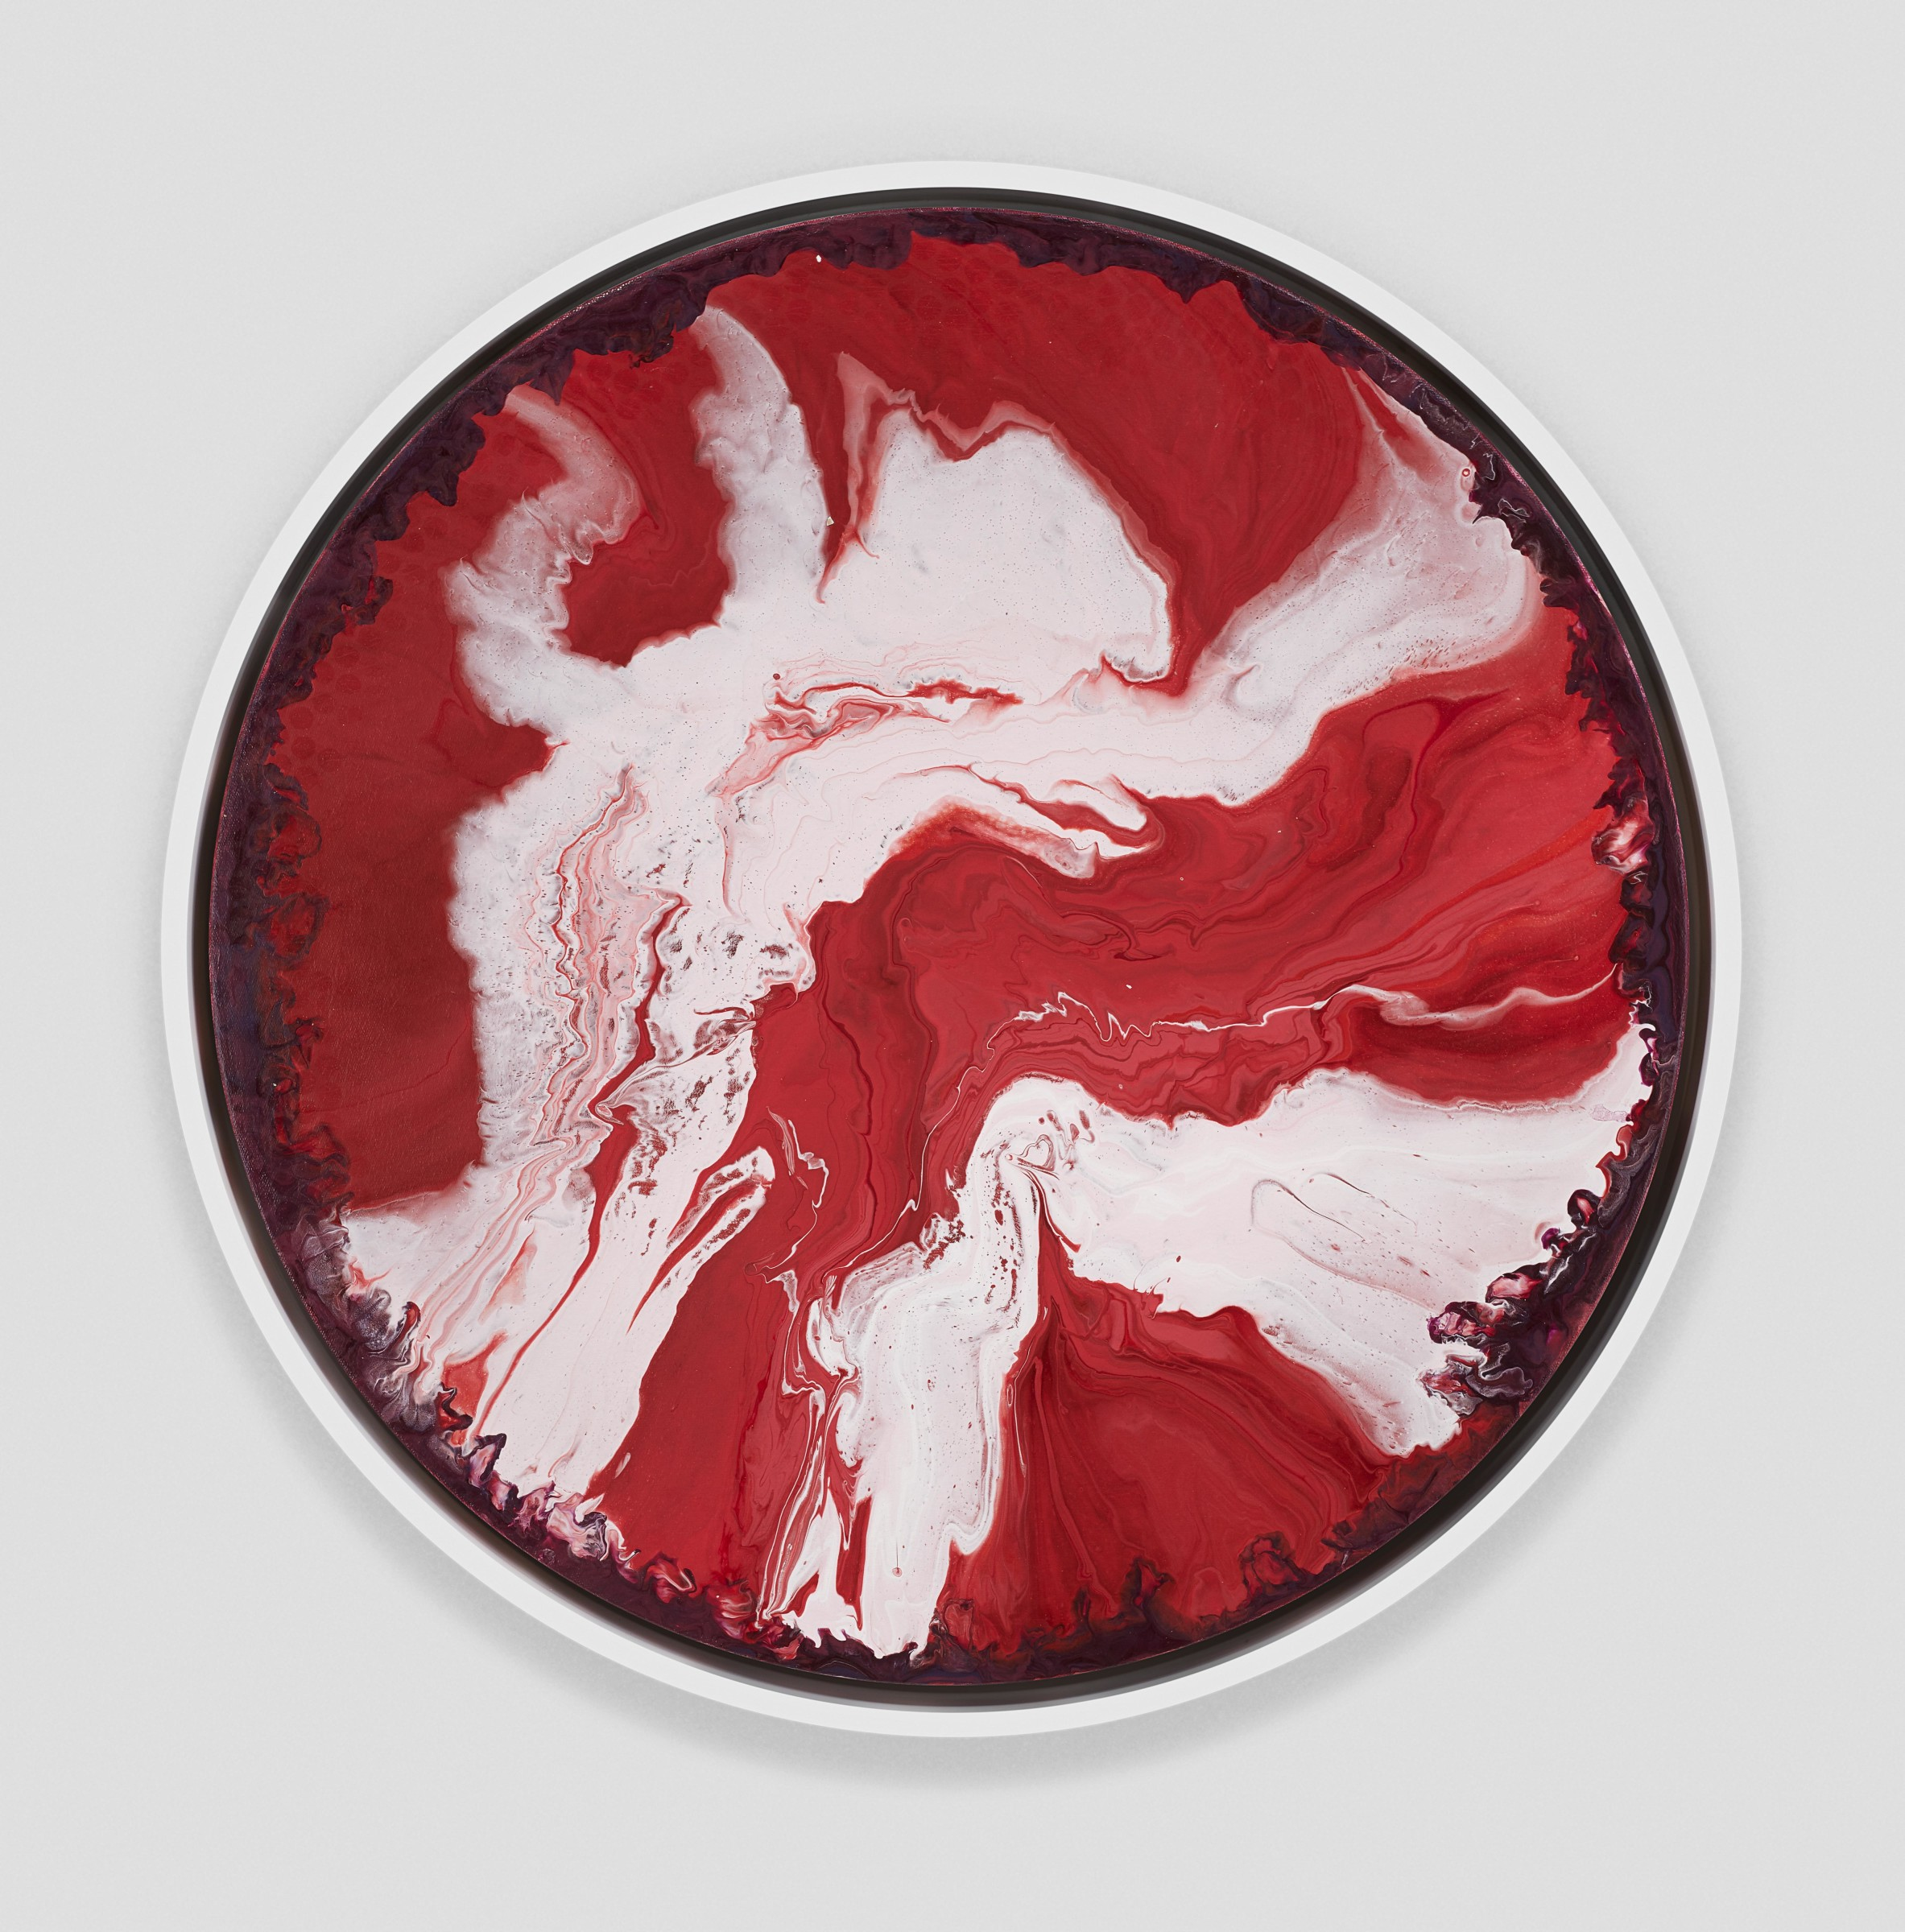 "<span class=""link fancybox-details-link""><a href=""/artists/66-elsa-duault/works/4939-elsa-duault-dancing-red-and-white-cells-2017/"">View Detail Page</a></span><div class=""artist""><strong>Elsa Duault</strong></div> 1992  <div class=""title""><em>Dancing red and white cells</em>, 2017</div> <div class=""medium"">Acrylic on canvas</div> <div class=""dimensions"">60cm diameter<br /> </div><div class=""copyright_line"">Copyright The Artist</div>"